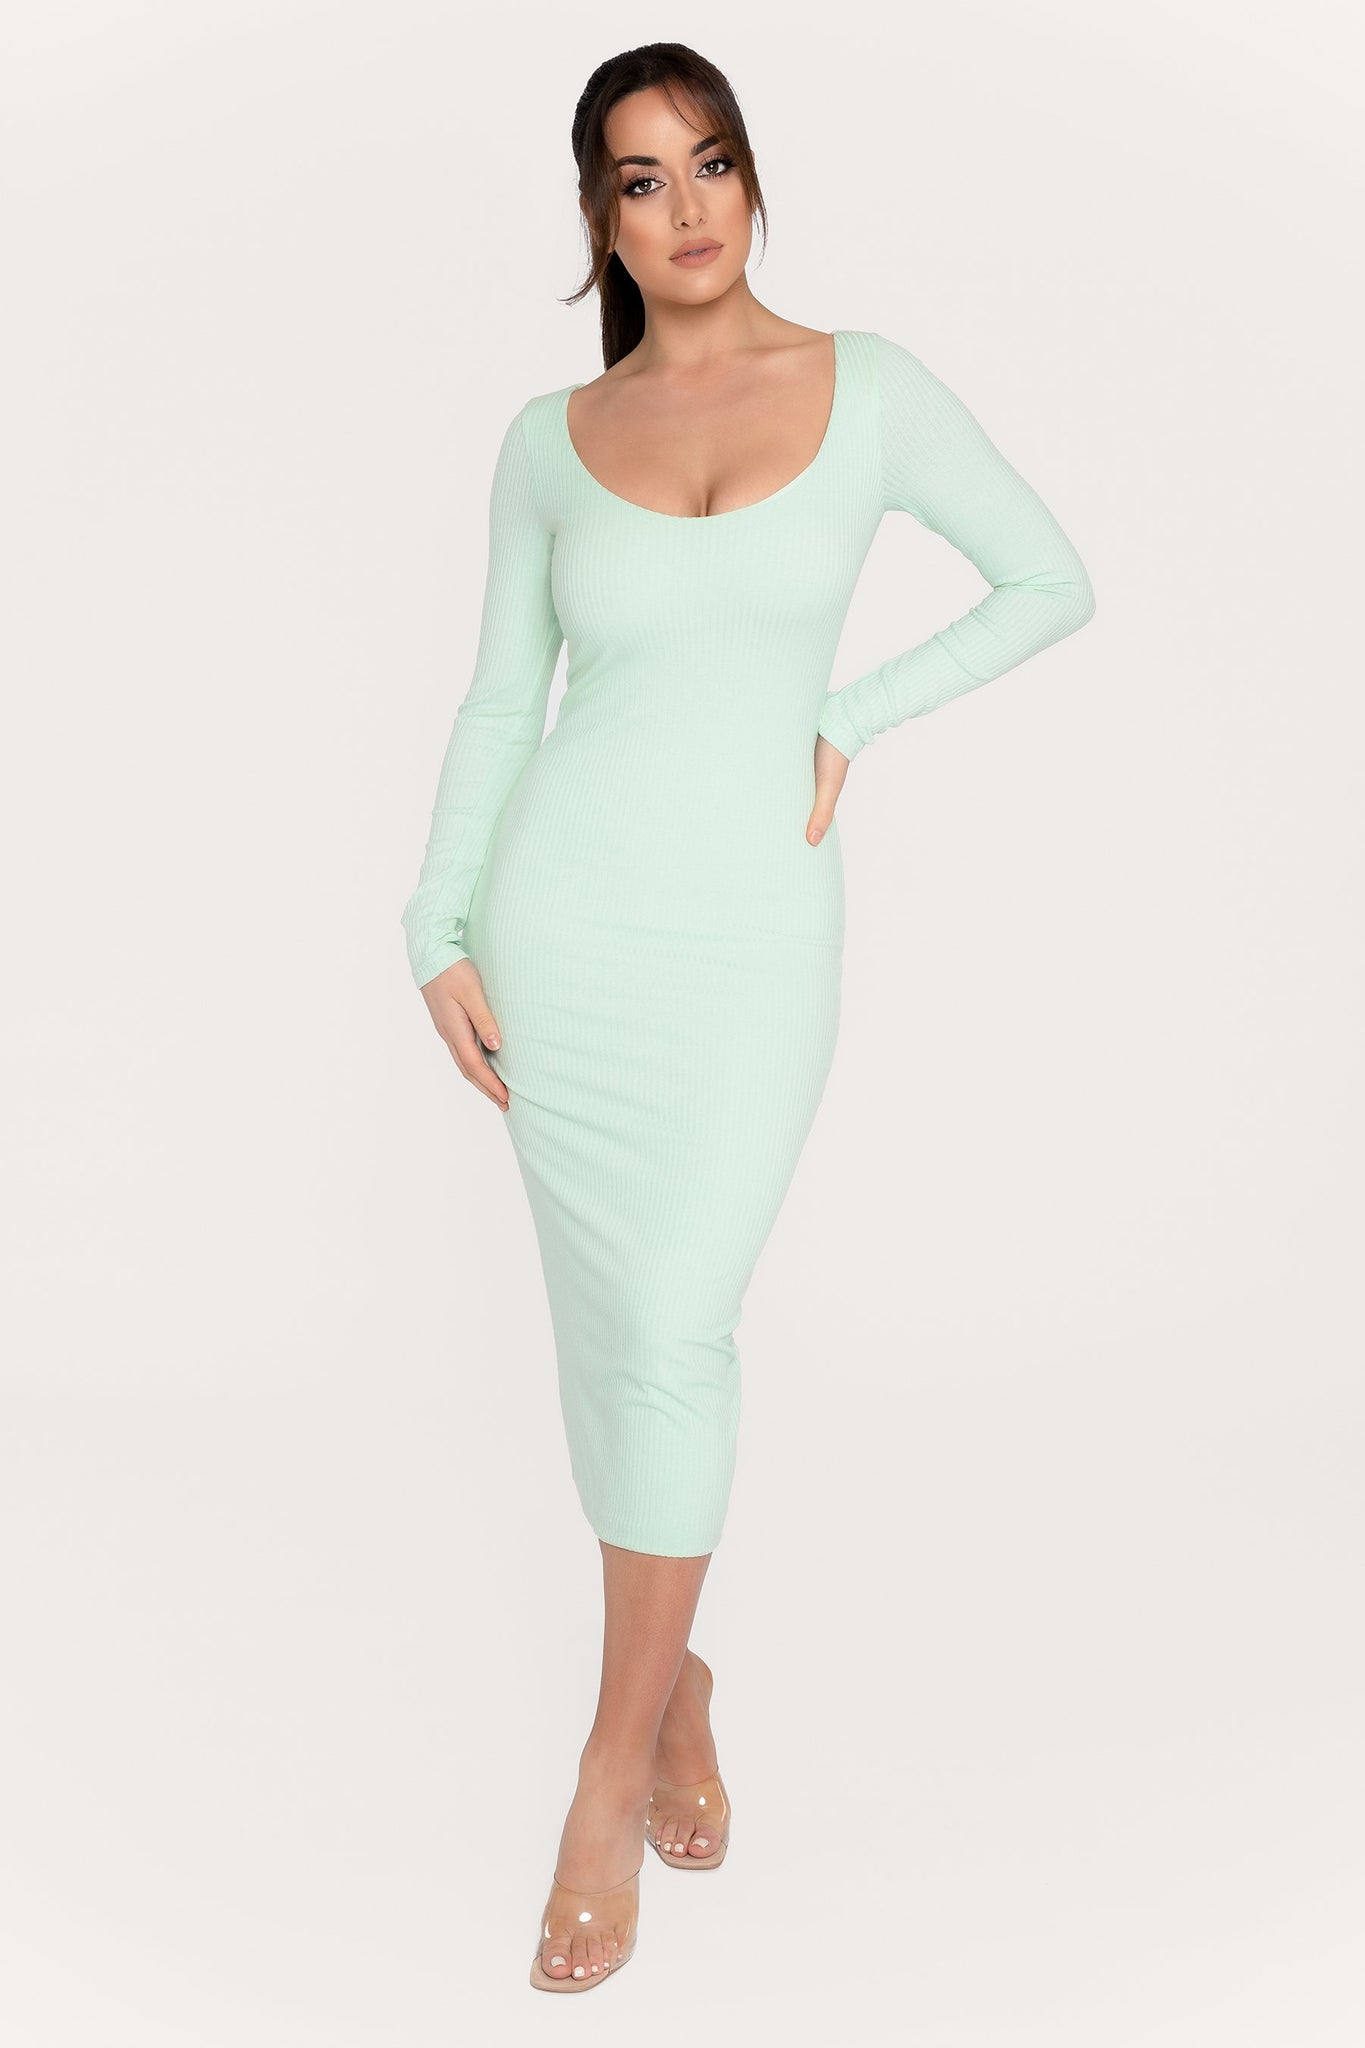 Desirae Long Sleeve Scoop Neck Midi Dress - Mint - MESHKI